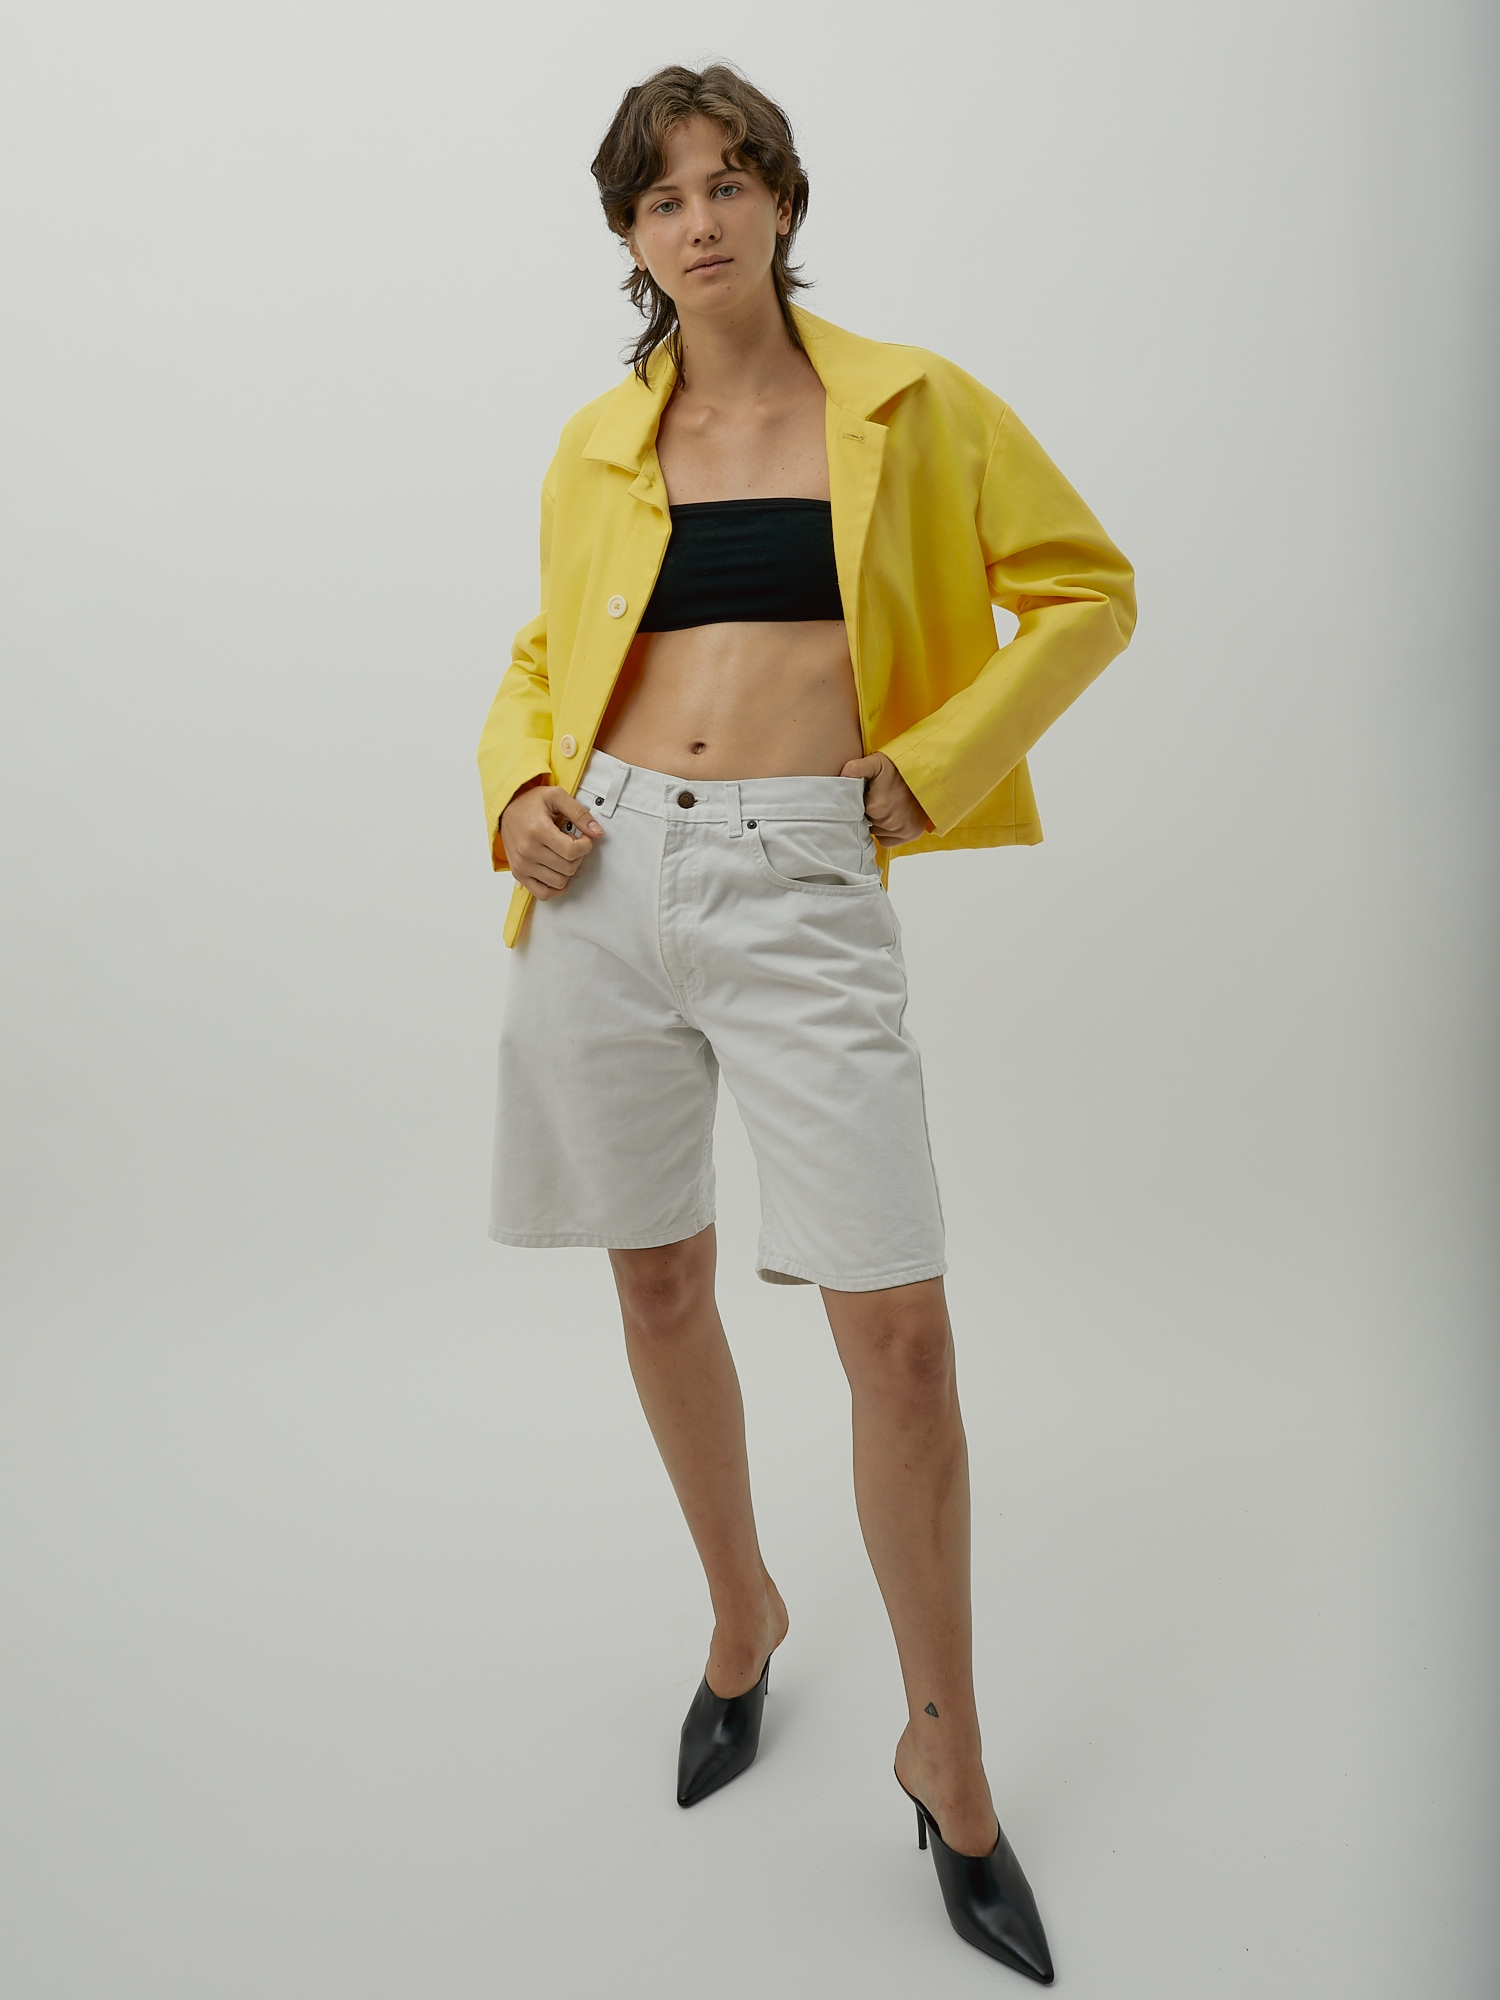 Outerwear Basics: Jacket in Yellow Canvas by One DNA